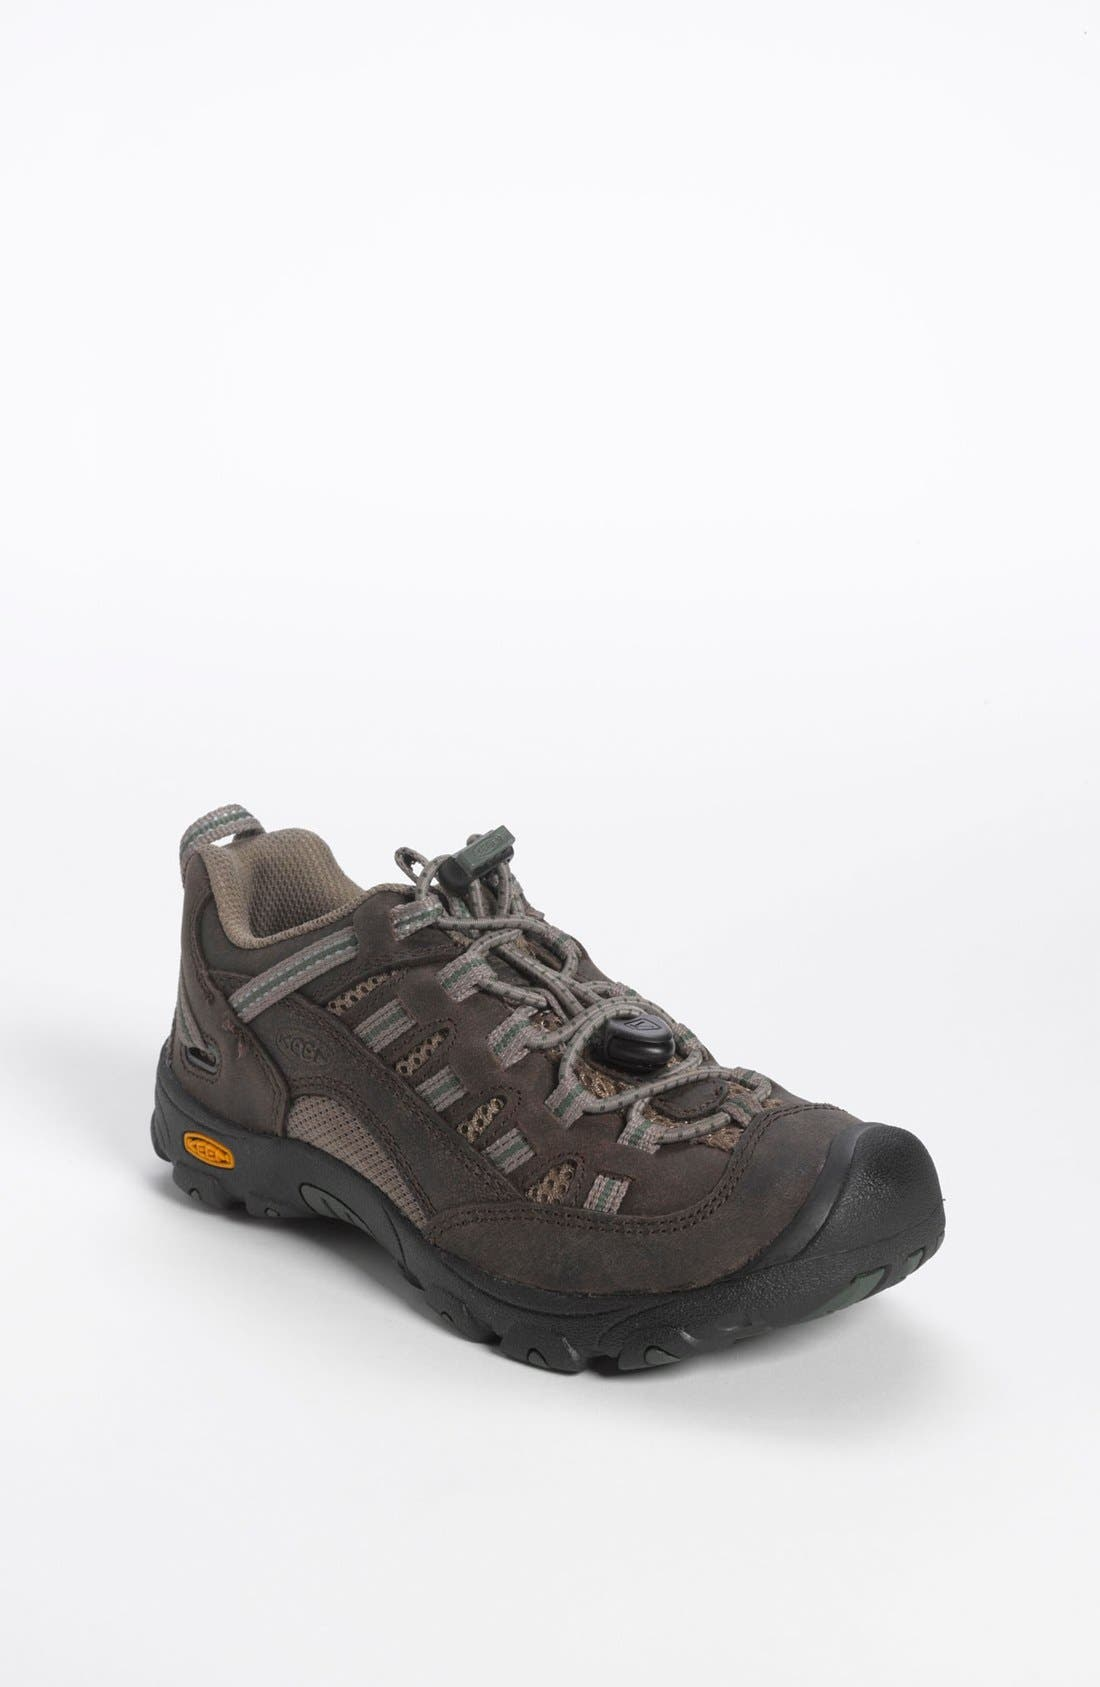 Alternate Image 1 Selected - Keen 'Alamosa' Sneaker (Toddler, Little Kid & Big Kid)